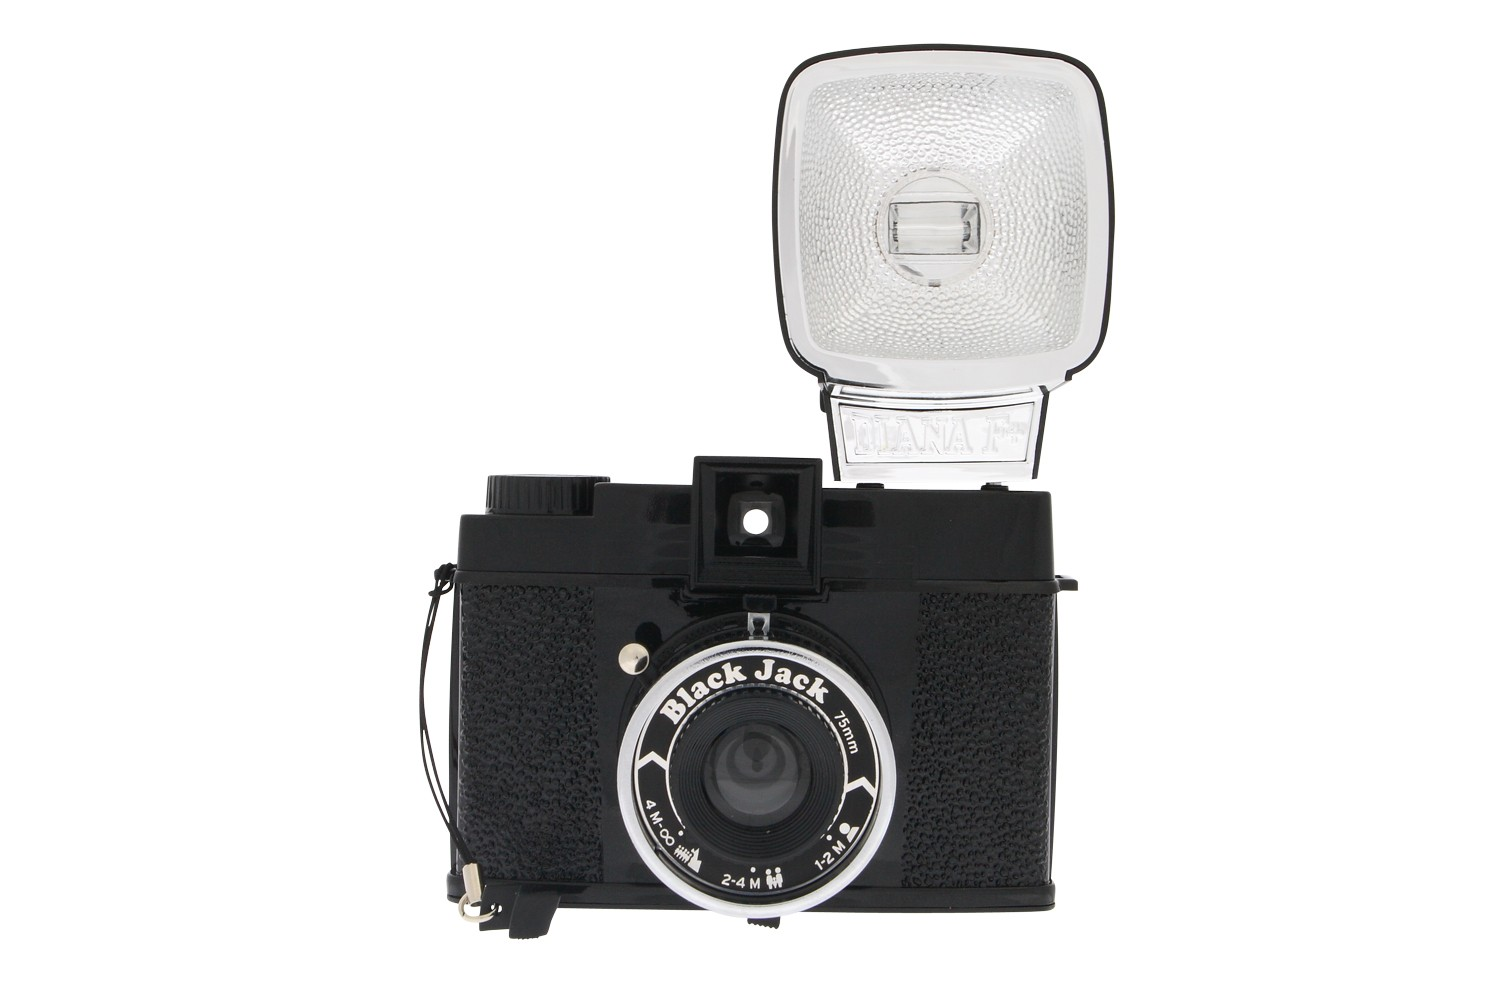 Diana F+ Camera and Flash (Black Jack Edition)